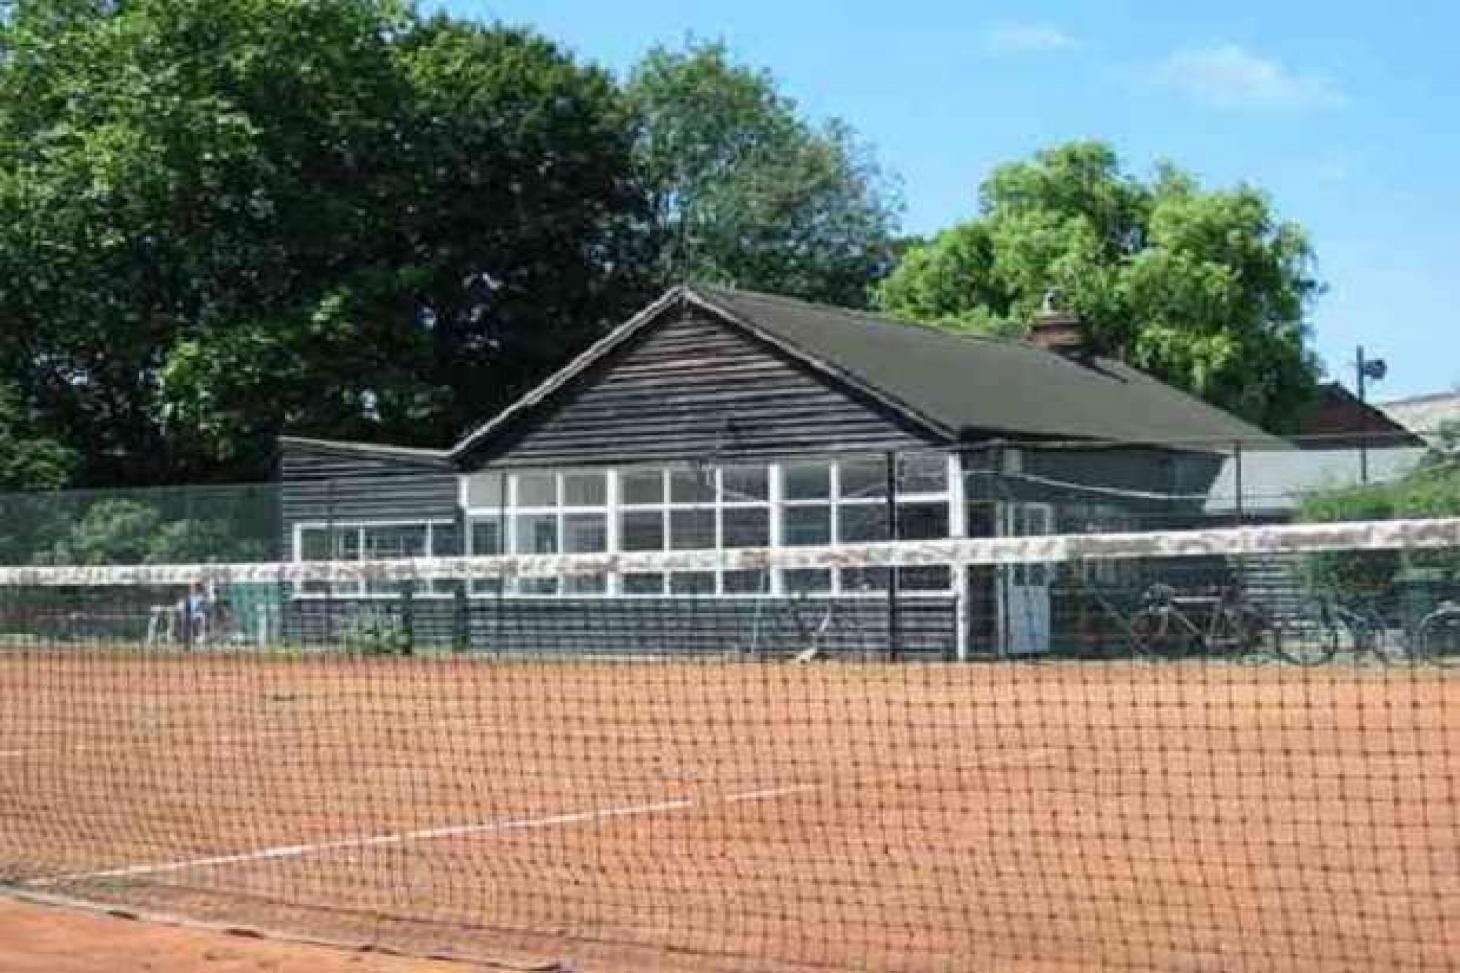 Grafton Lawn Tennis Club Outdoor | Clay tennis court